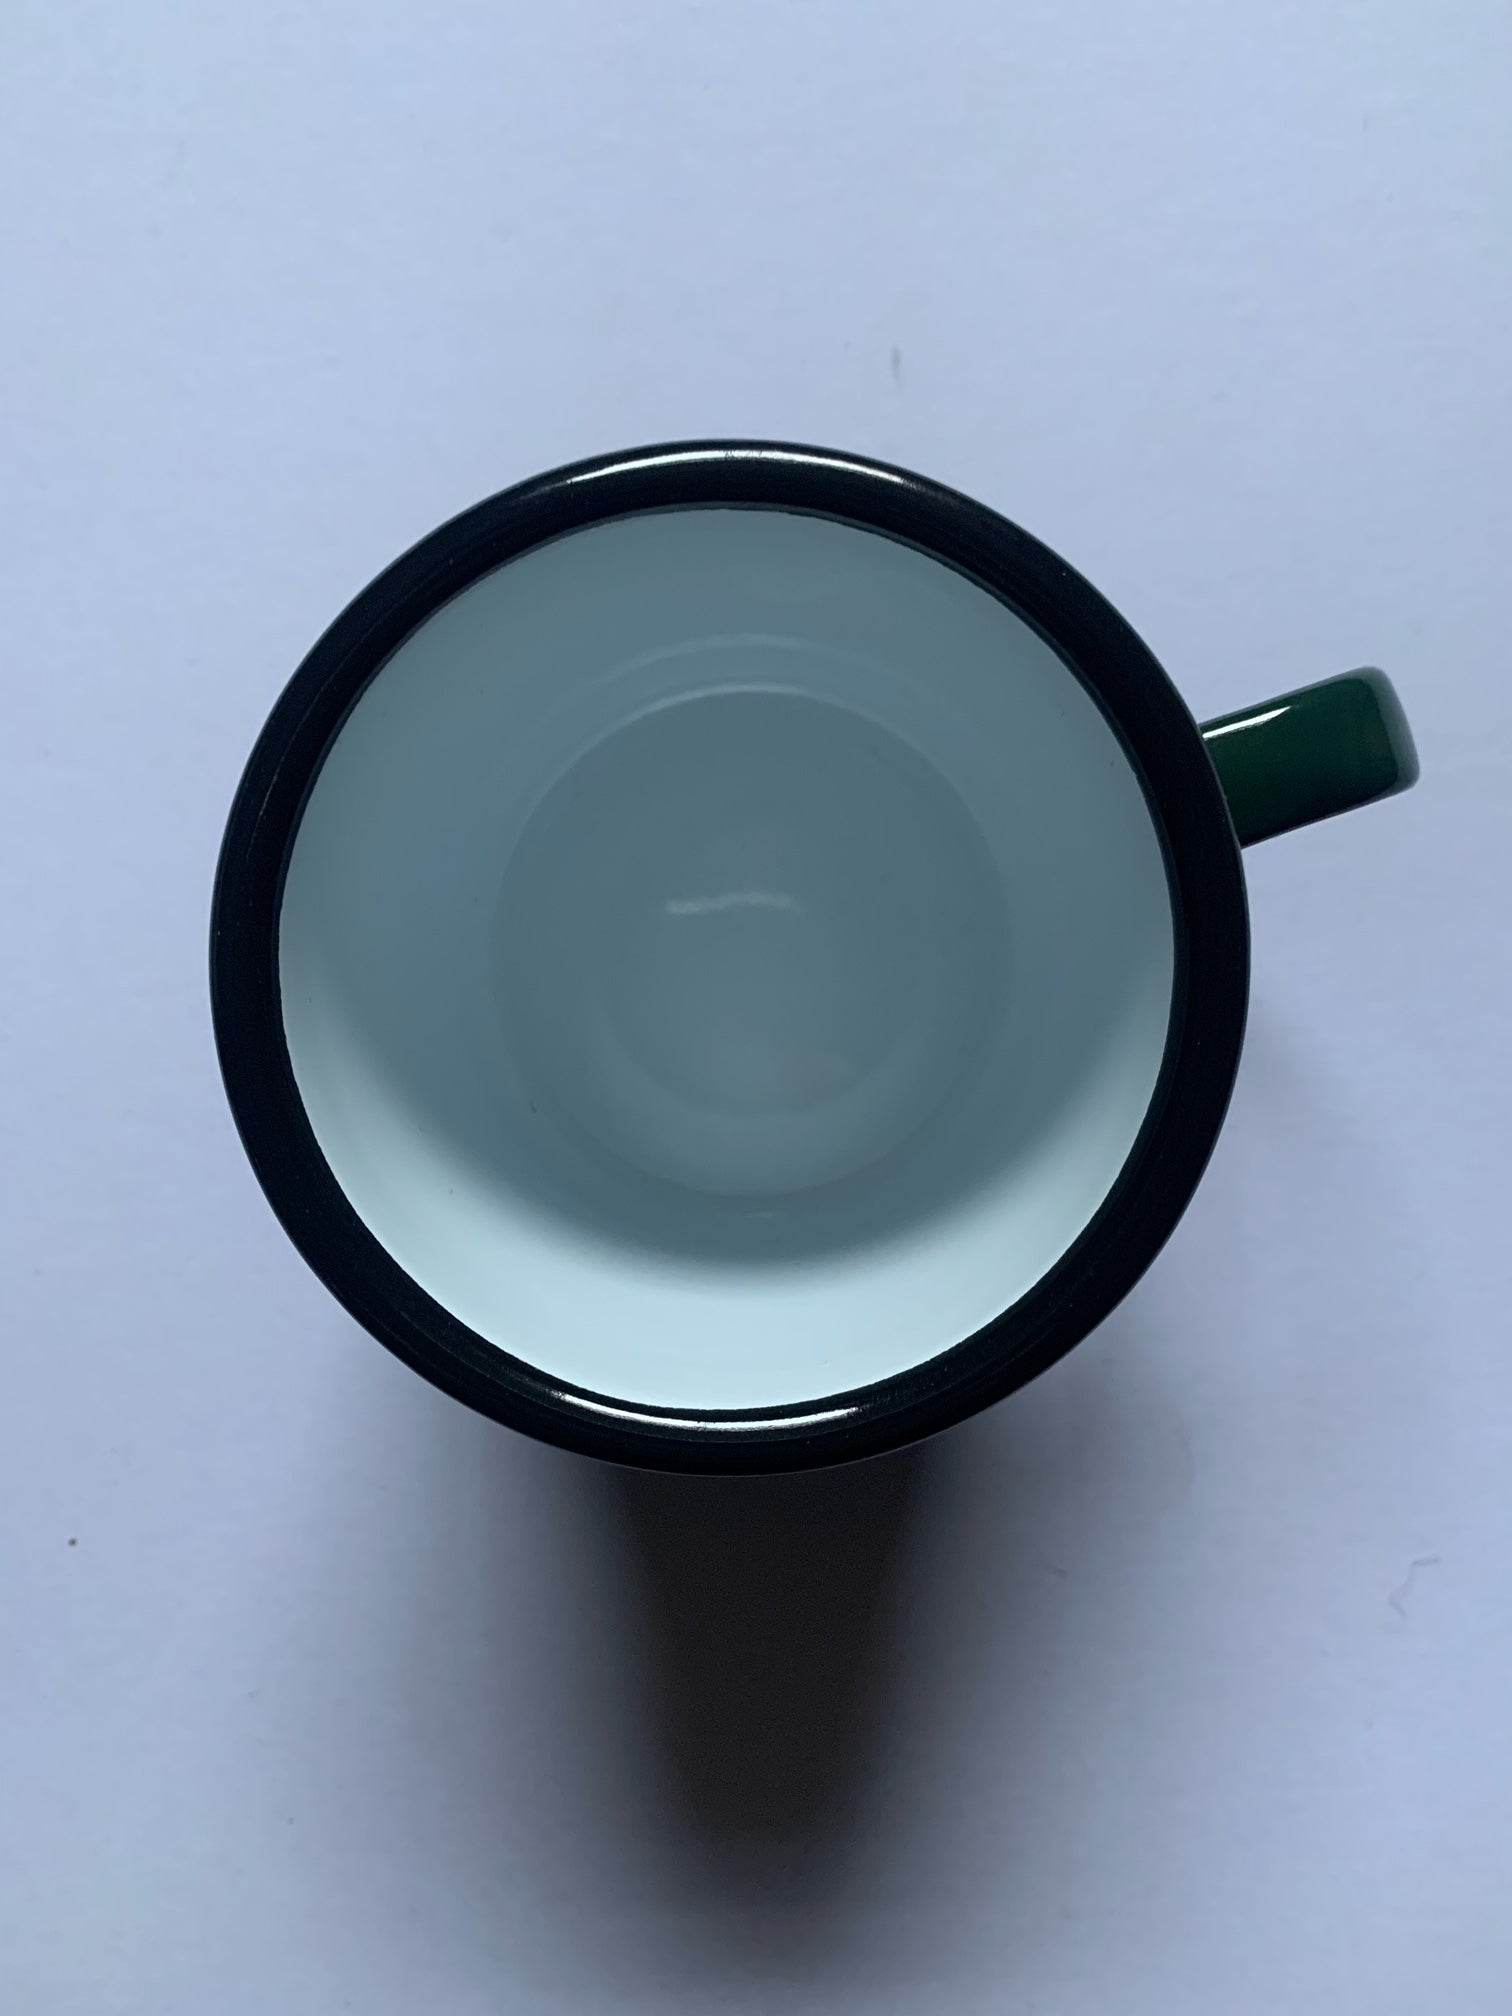 Green enamelware espresso cup from original enamelware brand Falcon which is oven, dishwasher, freezer, electric and gas hob friendly.